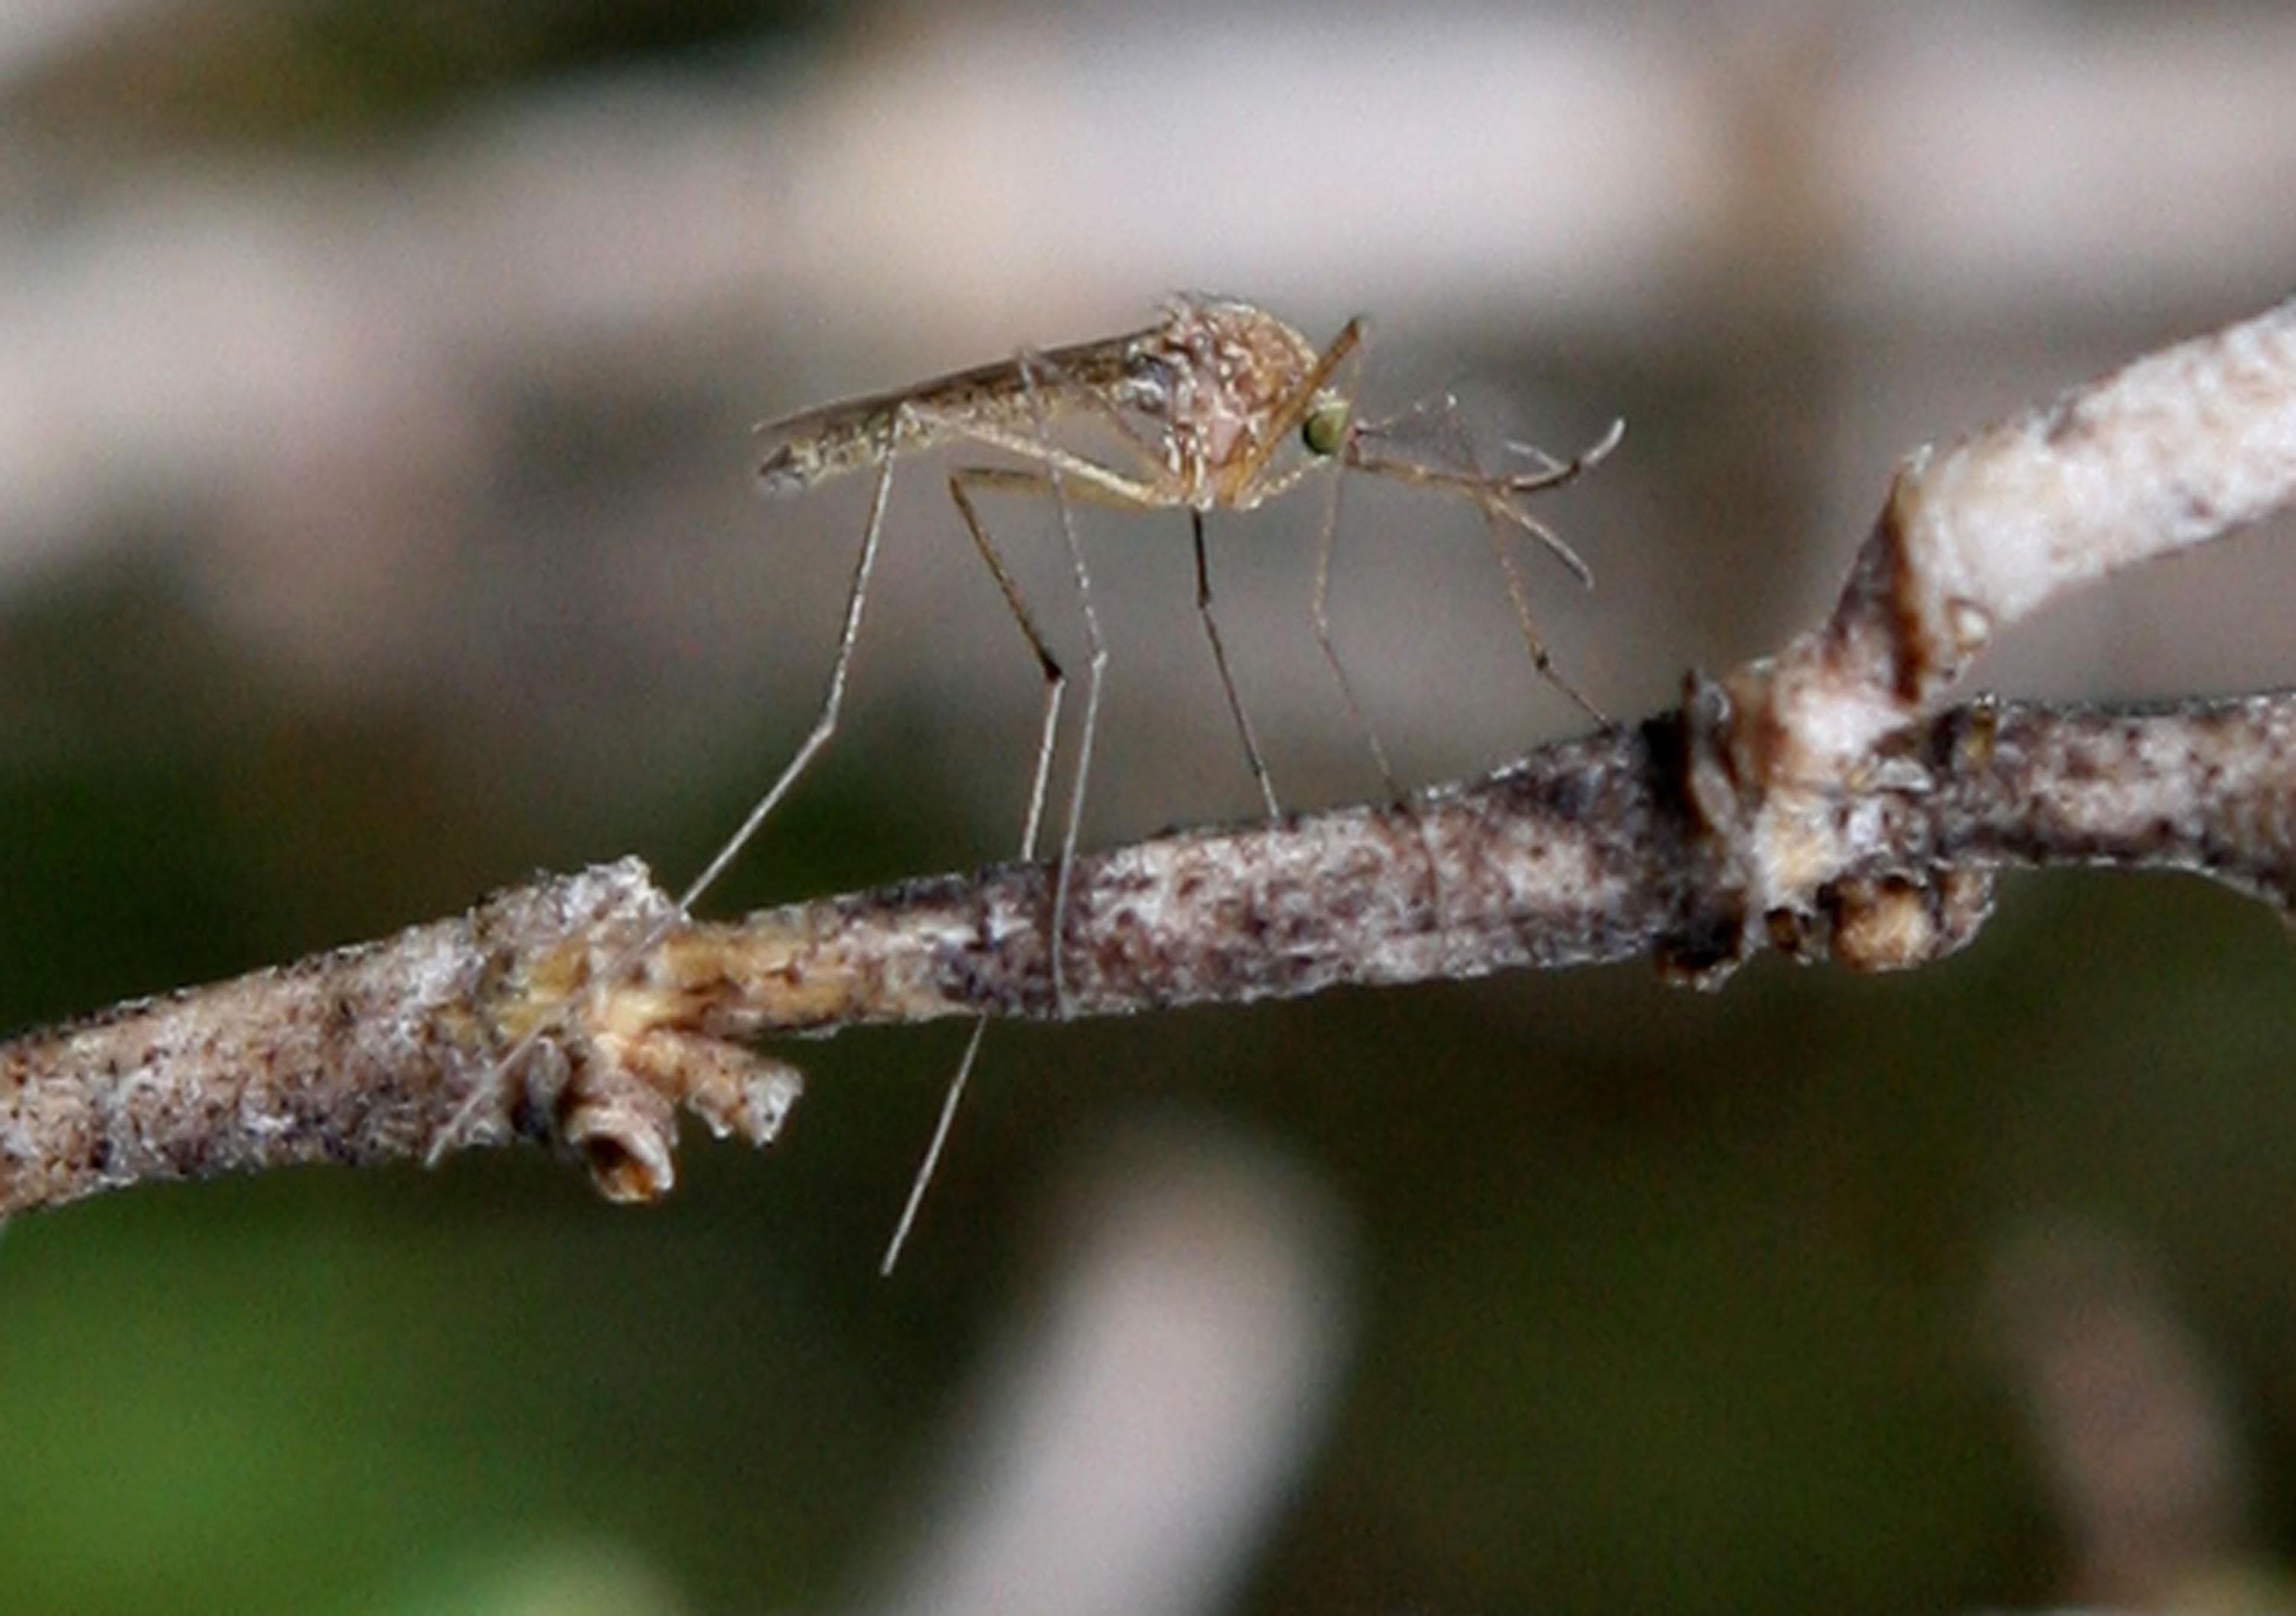 A mosquito sits on a stick.